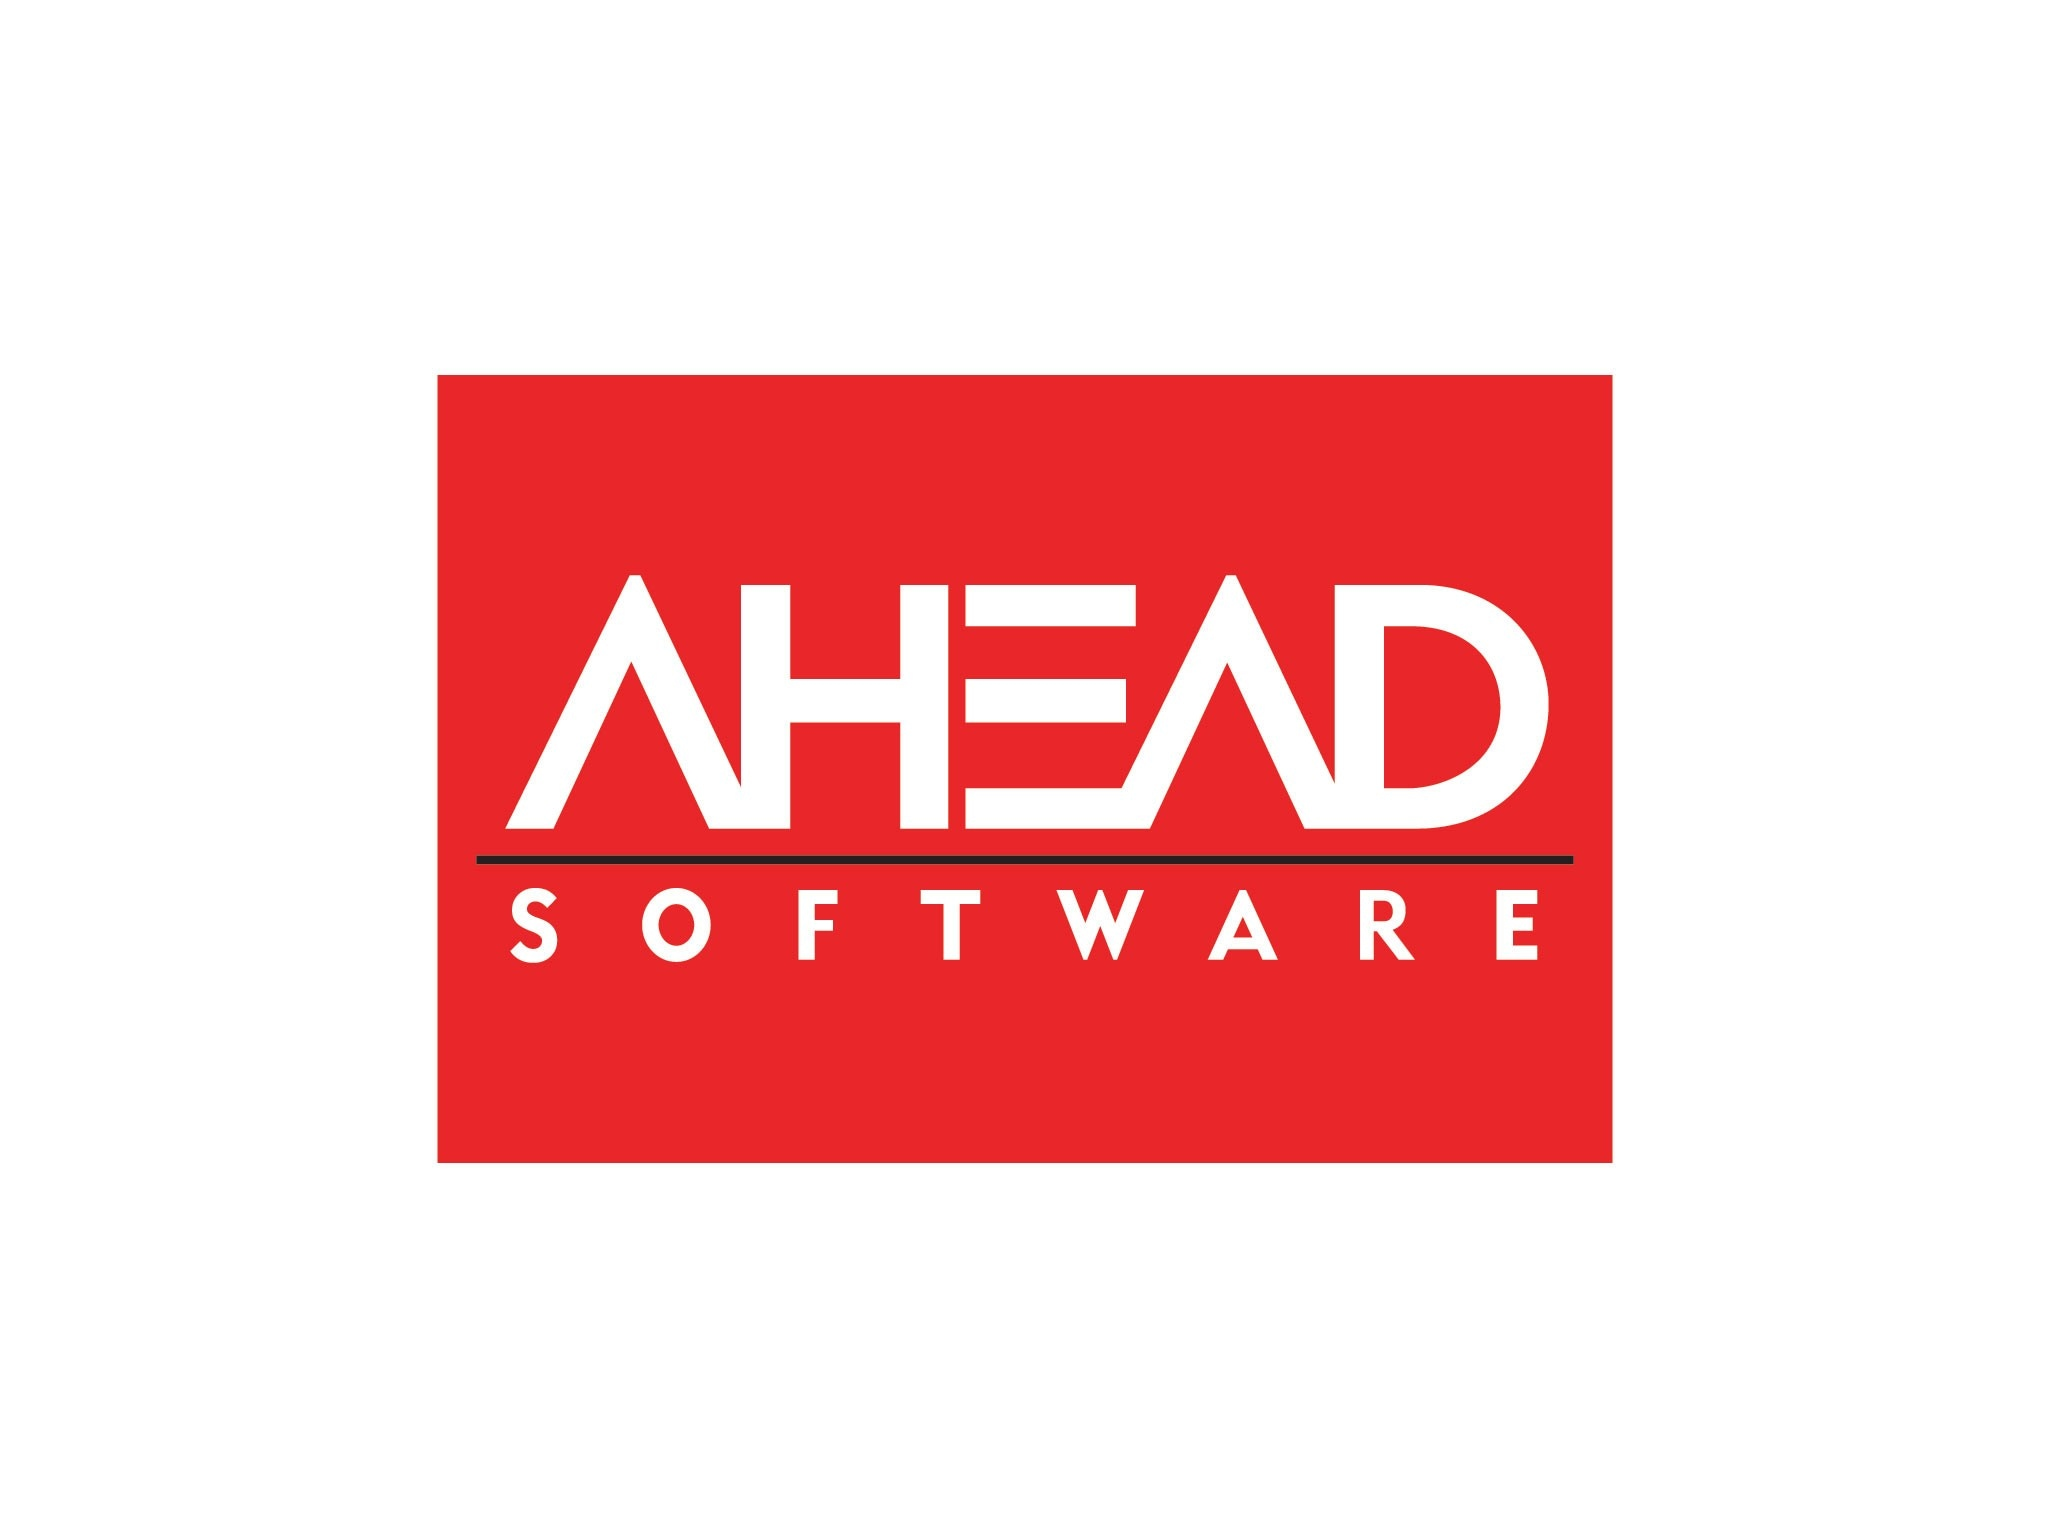 Ahead Software